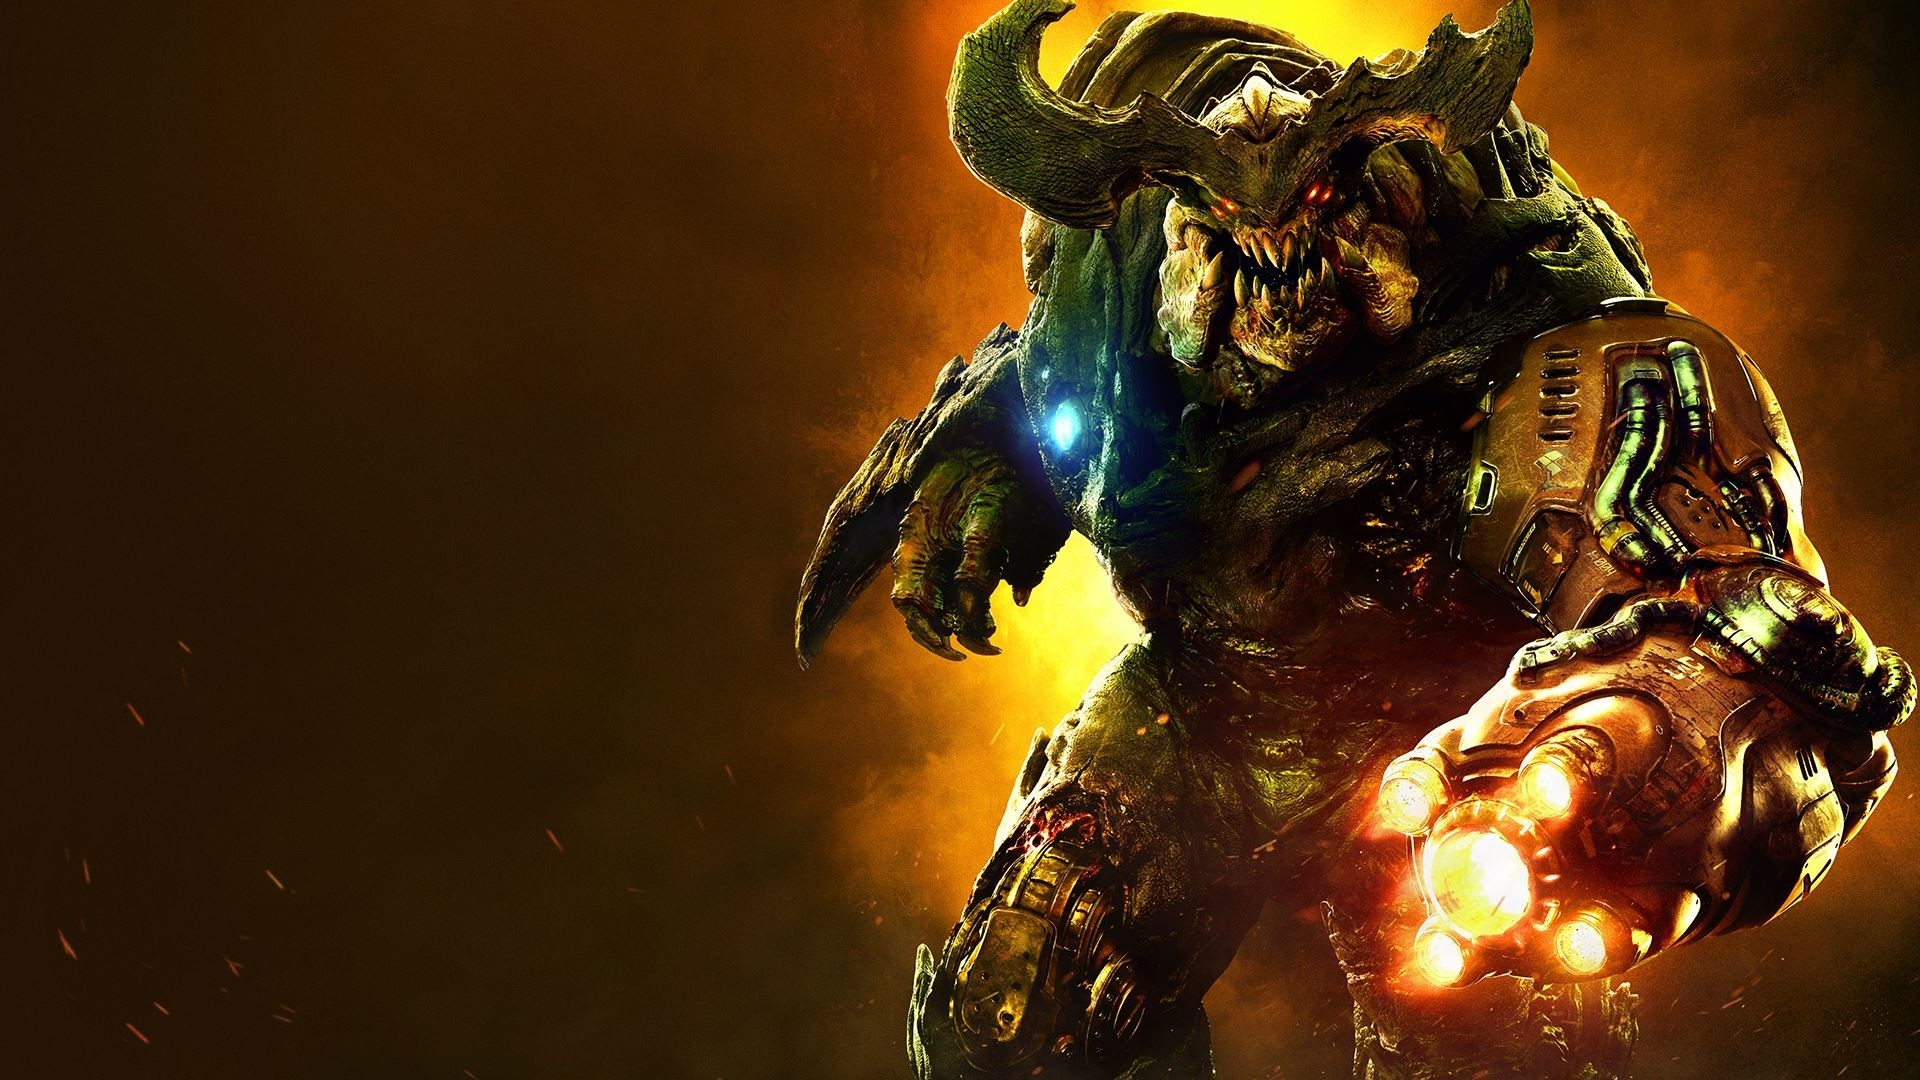 1920x1080 4K Ultra HDQ Cover Doom 4 Wallpapers | By Tasia Wittman